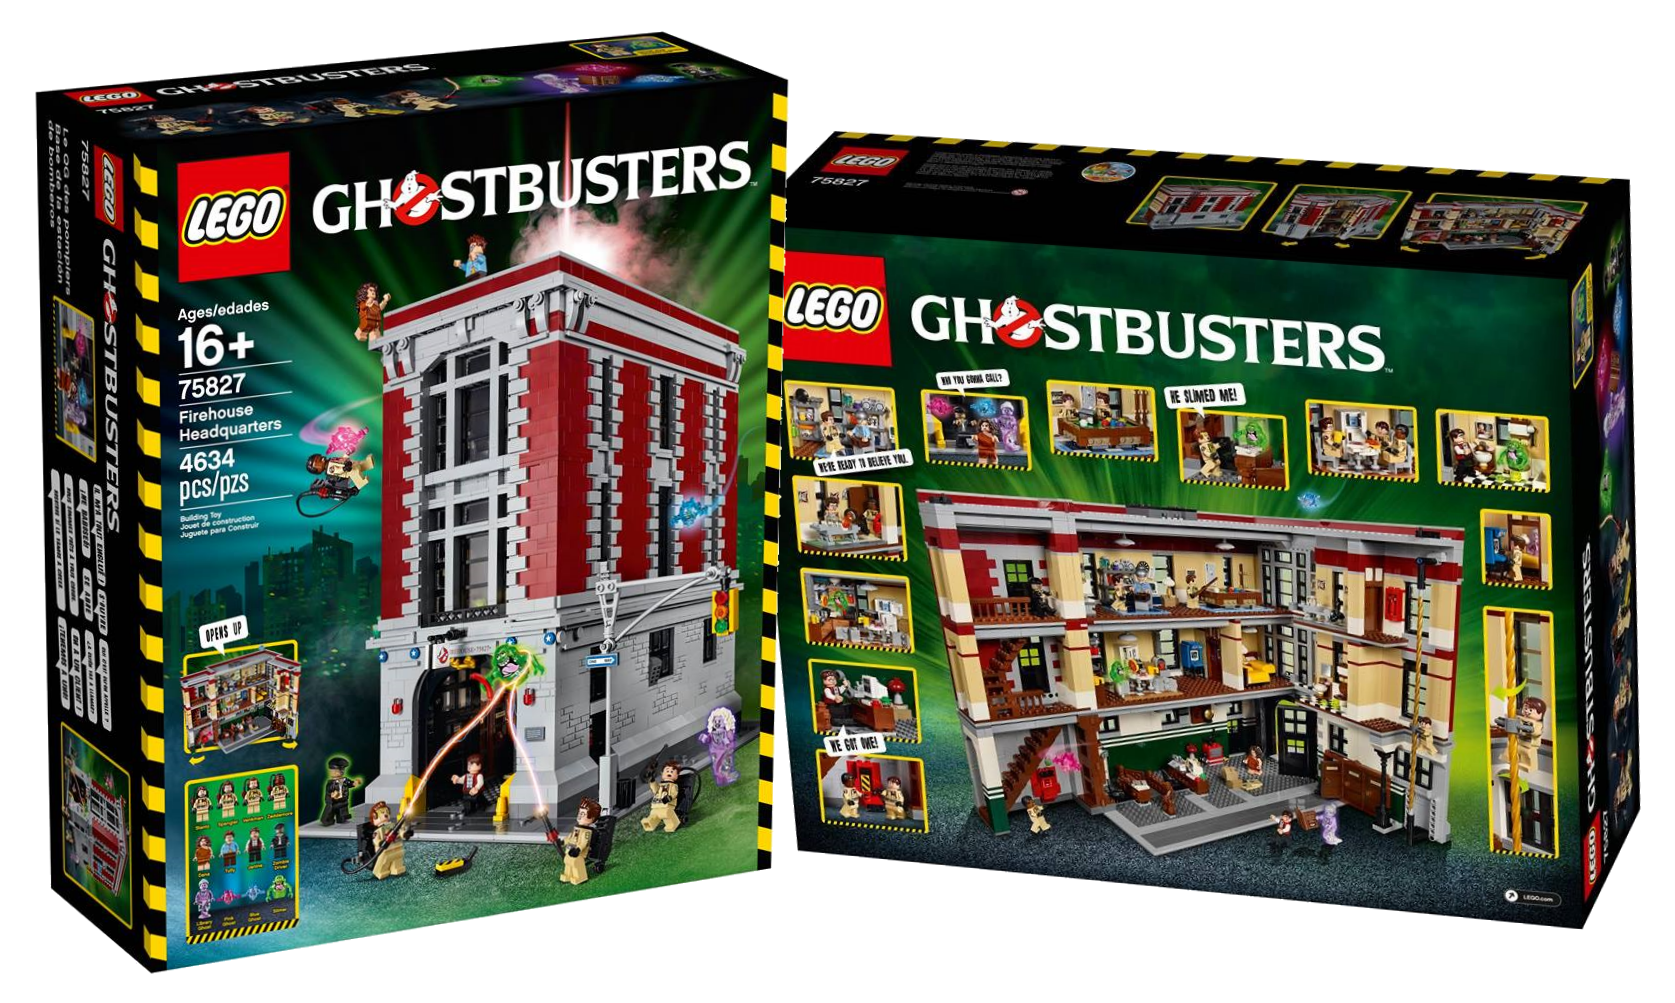 lego nouveaut 1 le qg des ghostbusters la zone. Black Bedroom Furniture Sets. Home Design Ideas